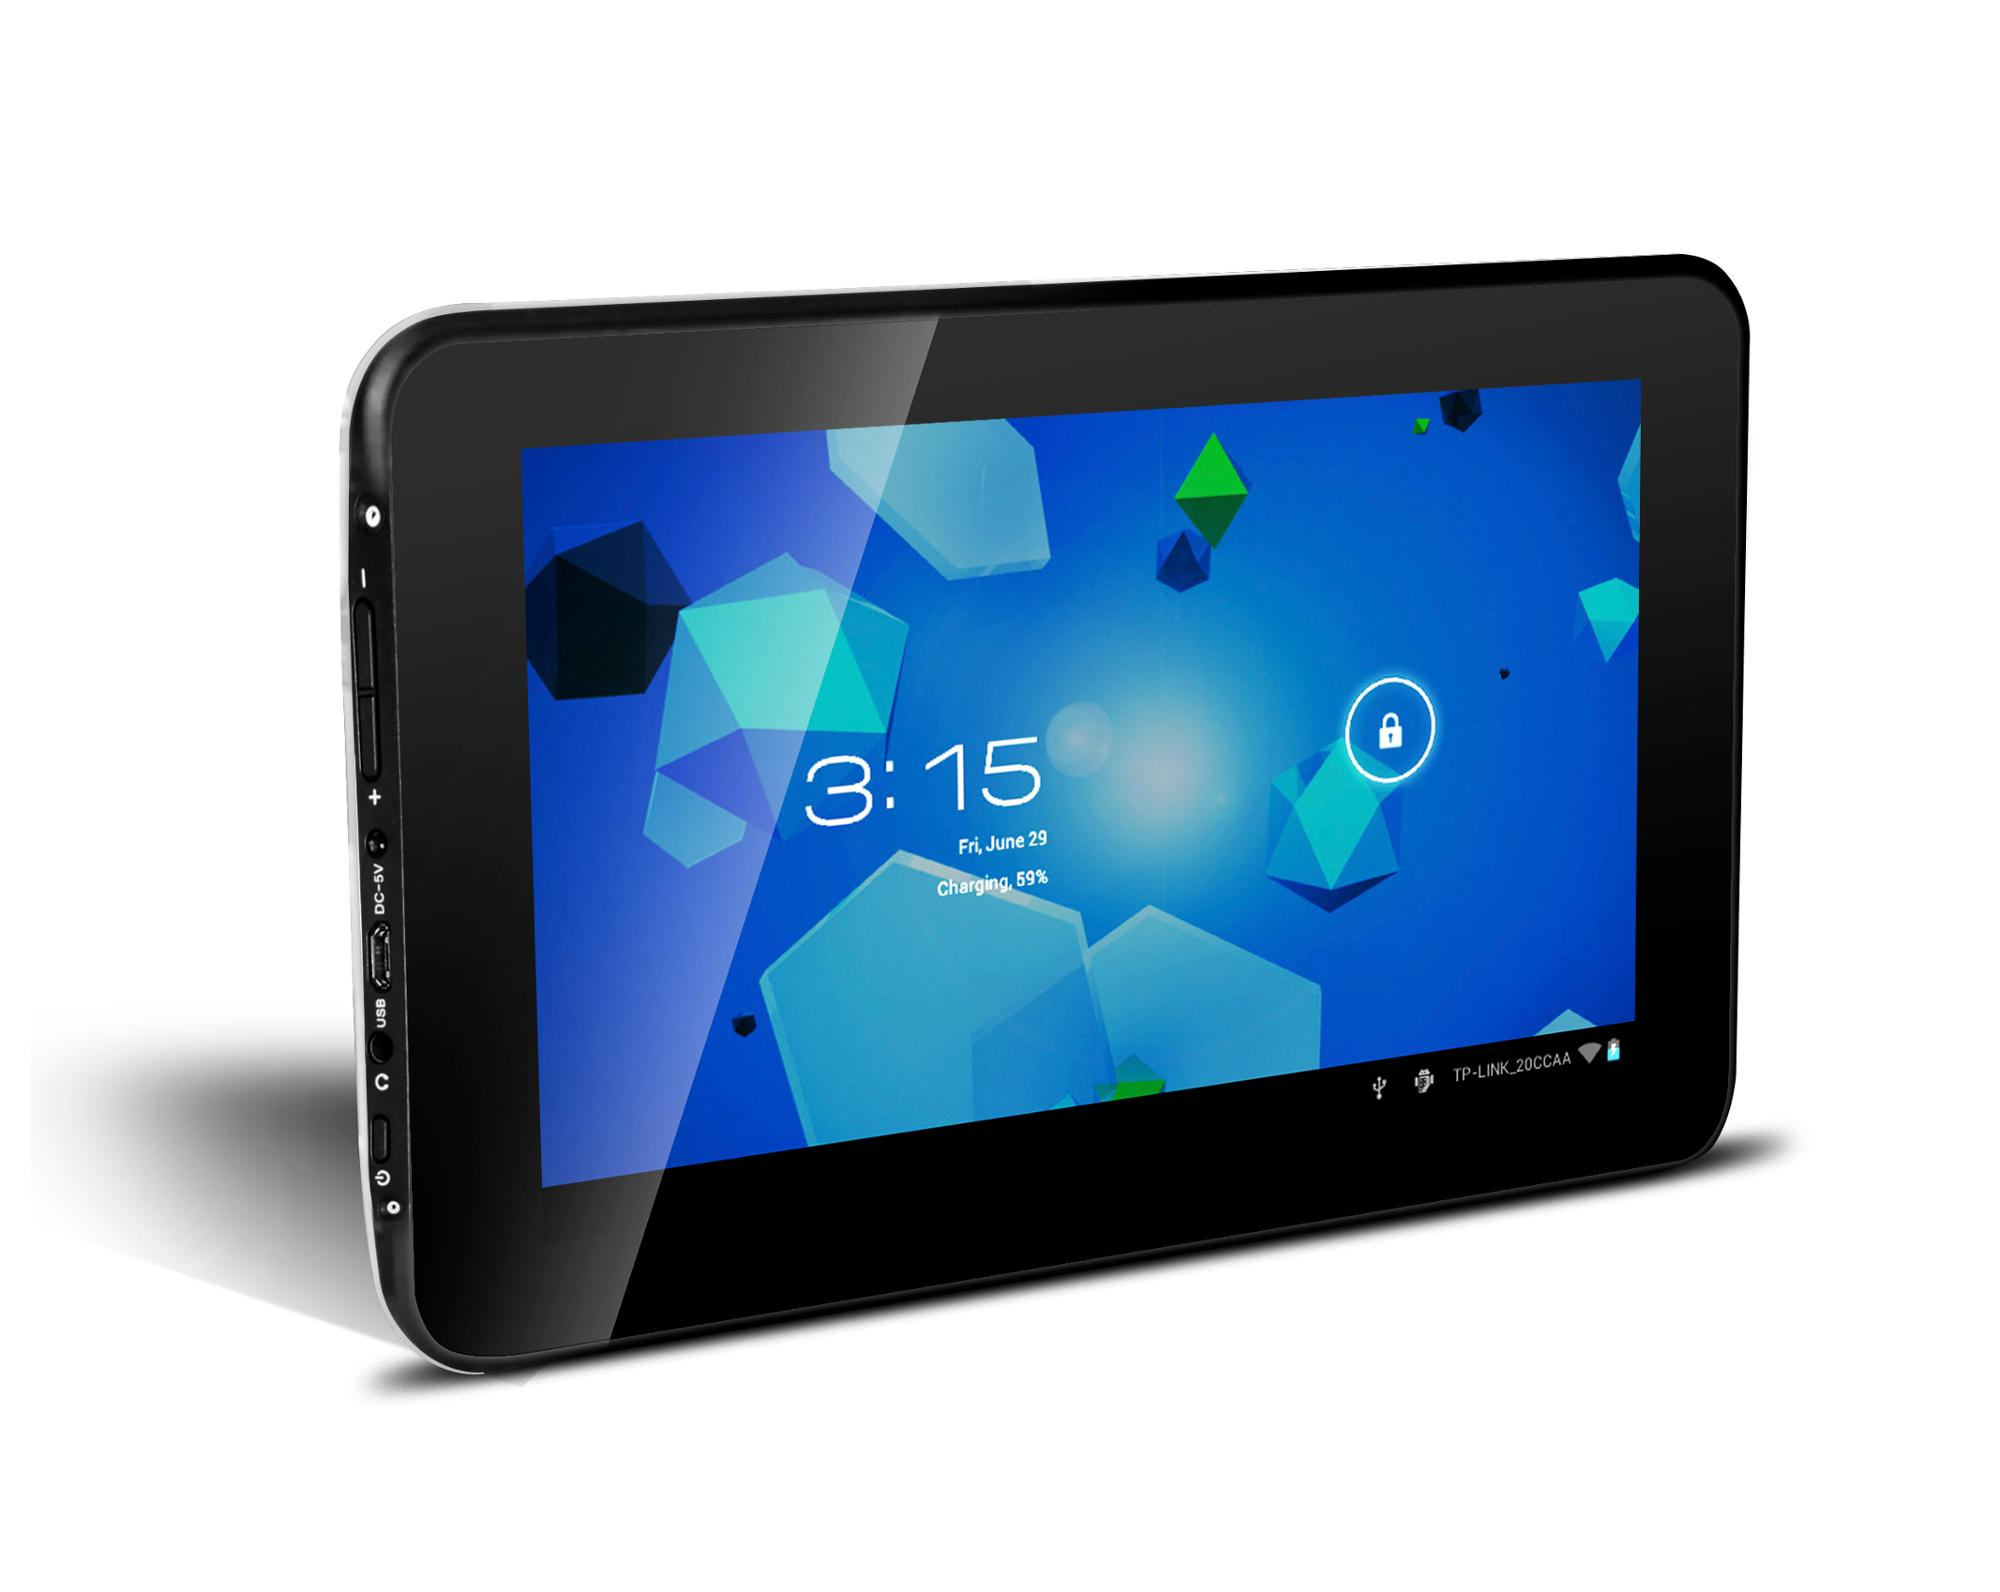 "7 Inch MID Tablet Pc 7"" Allwinner A33 Quad core 1.3GHz  86V Tablets 1G RAM 8GB ROM"